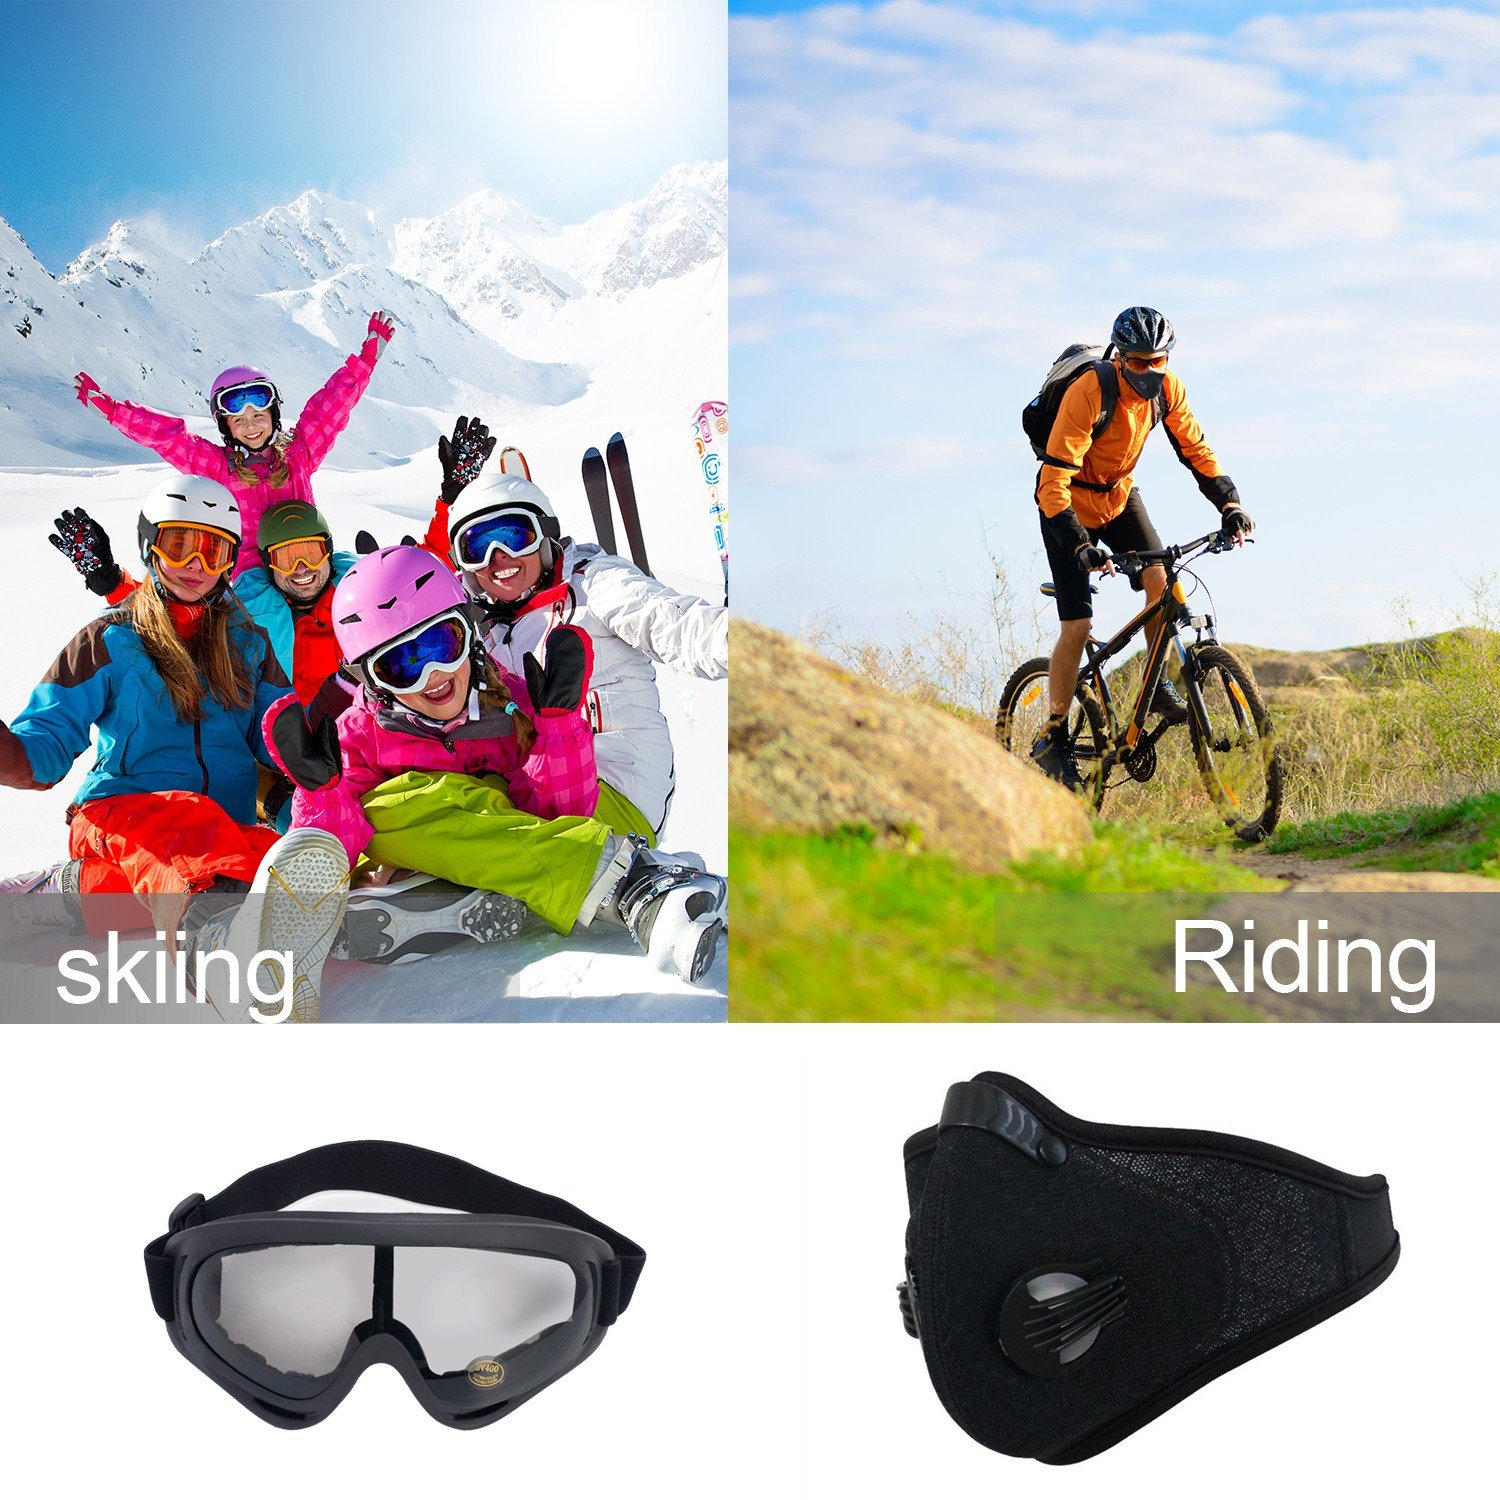 Activated Carbon Dust Mask Motorcycling Goggle Pack of 2 Dustproof Face  Mask Filtration Exhaust Gas Anti Pollen Allergy PM2 5 Dust Mask Filter Ski